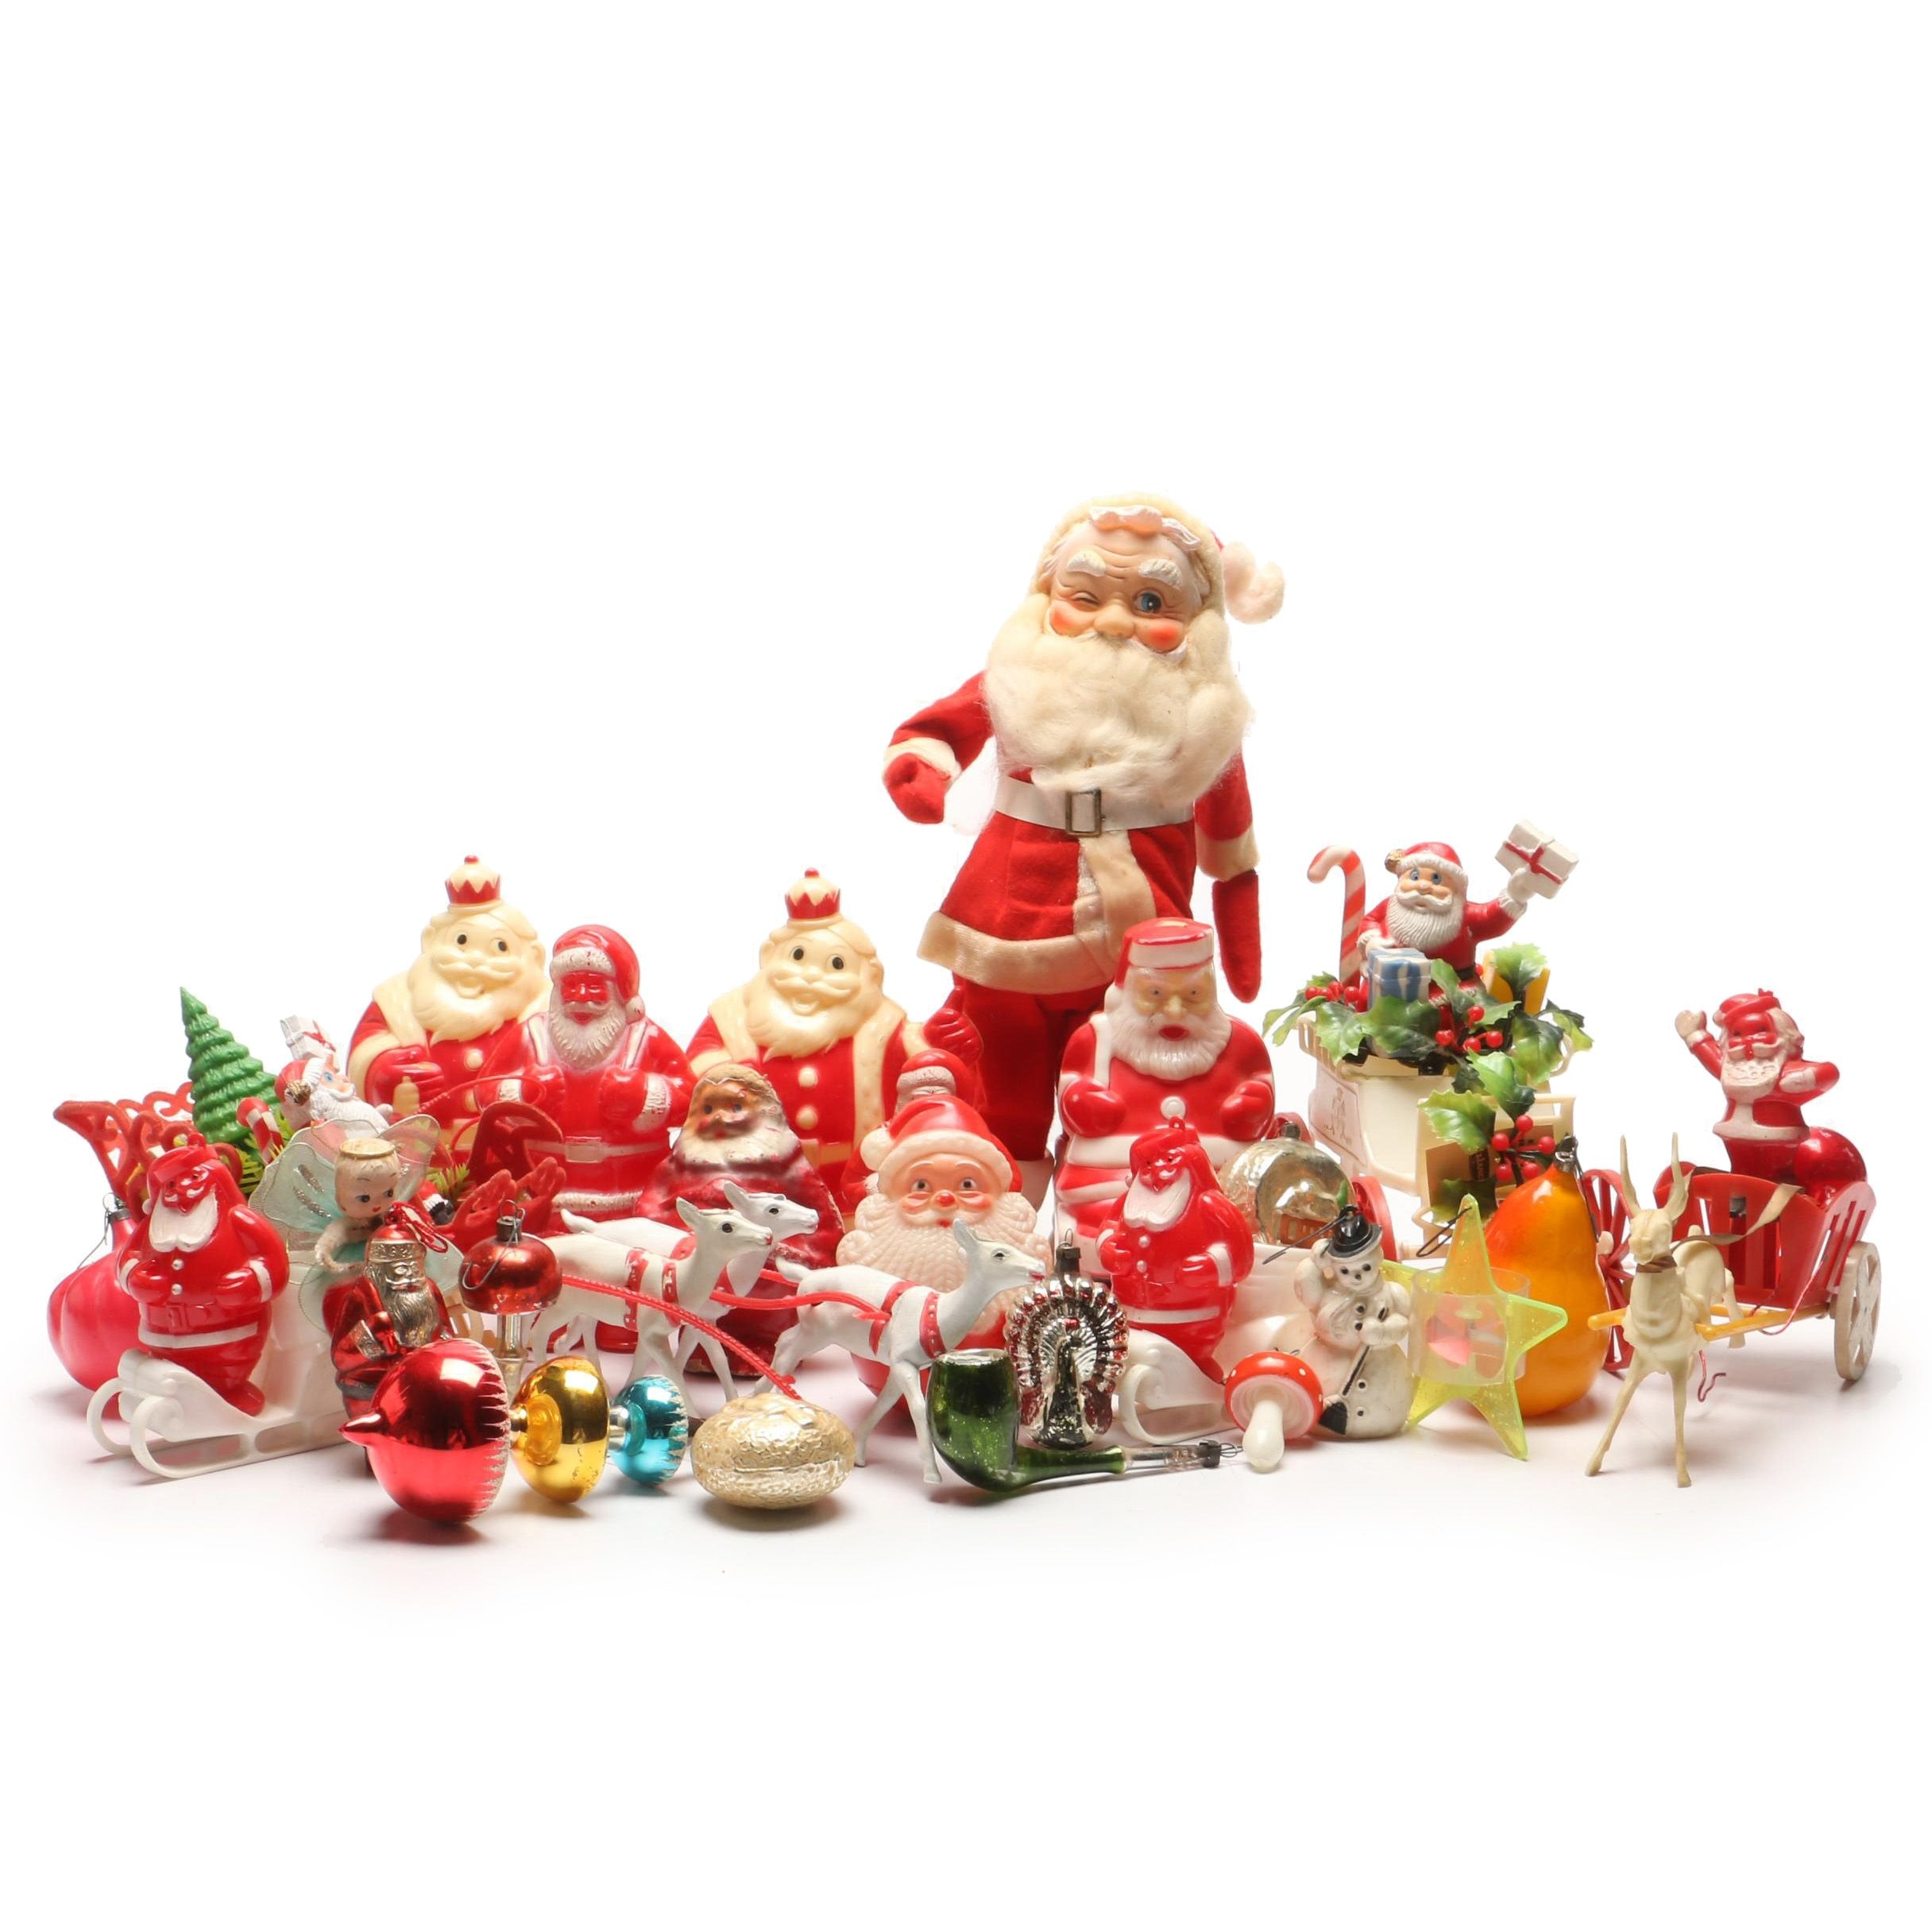 Grouping of Vintage Christmas Decor